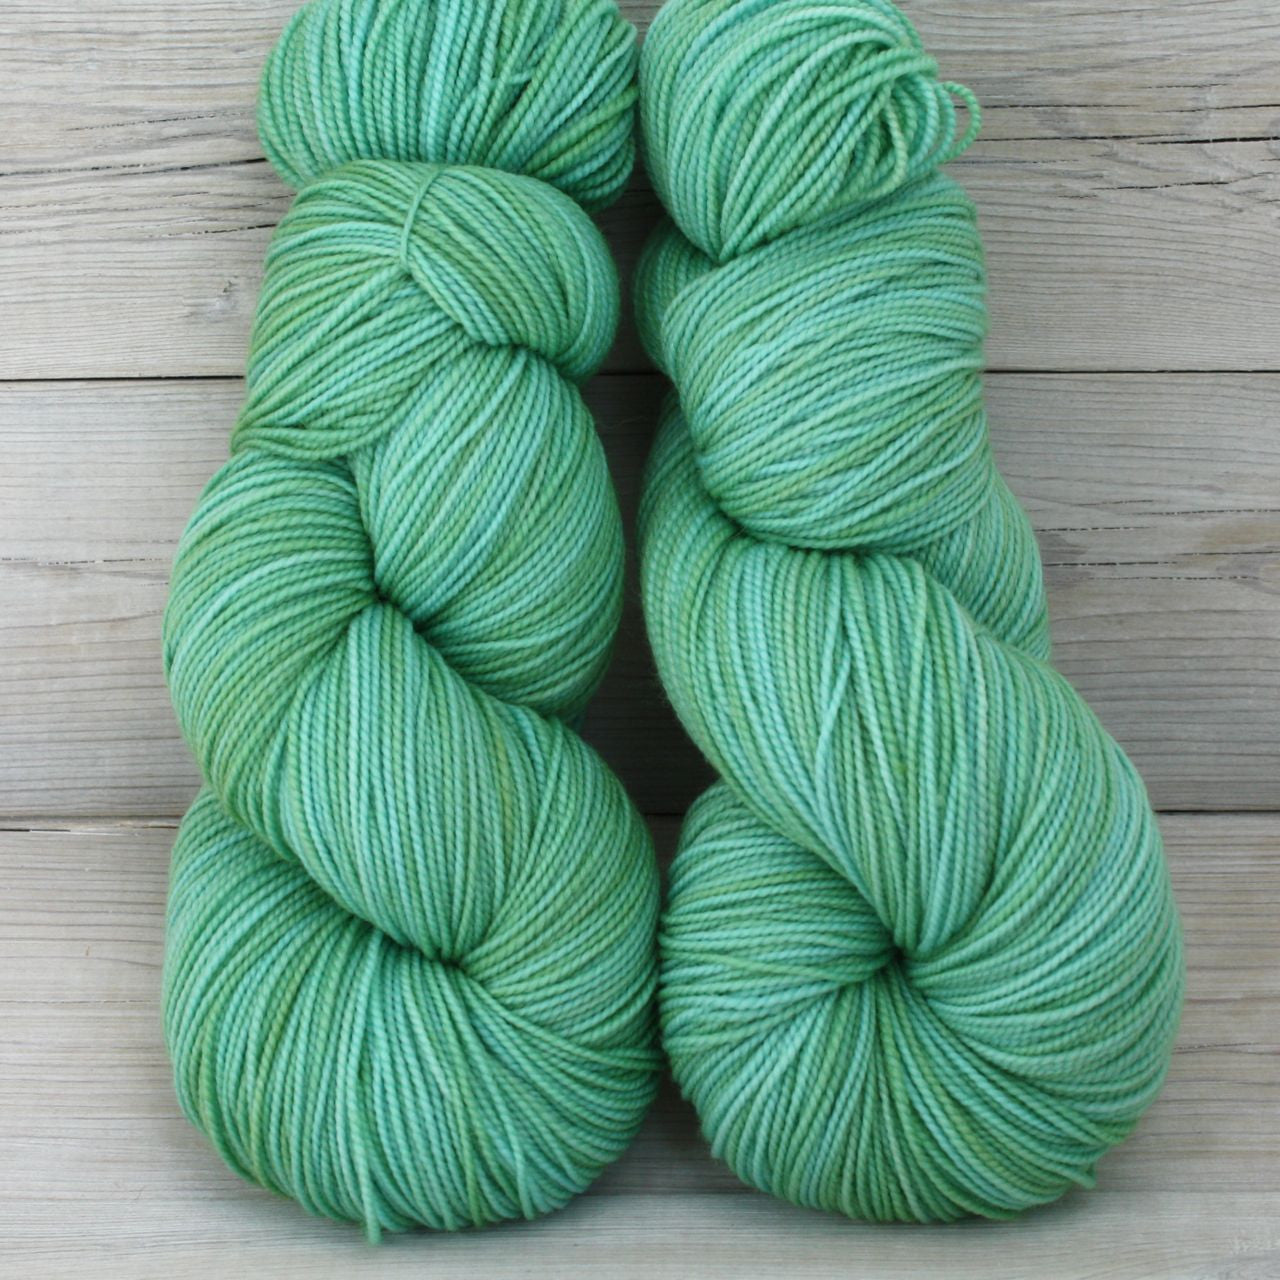 Celeste Yarn | Colorway: Sea Glass | Overstock